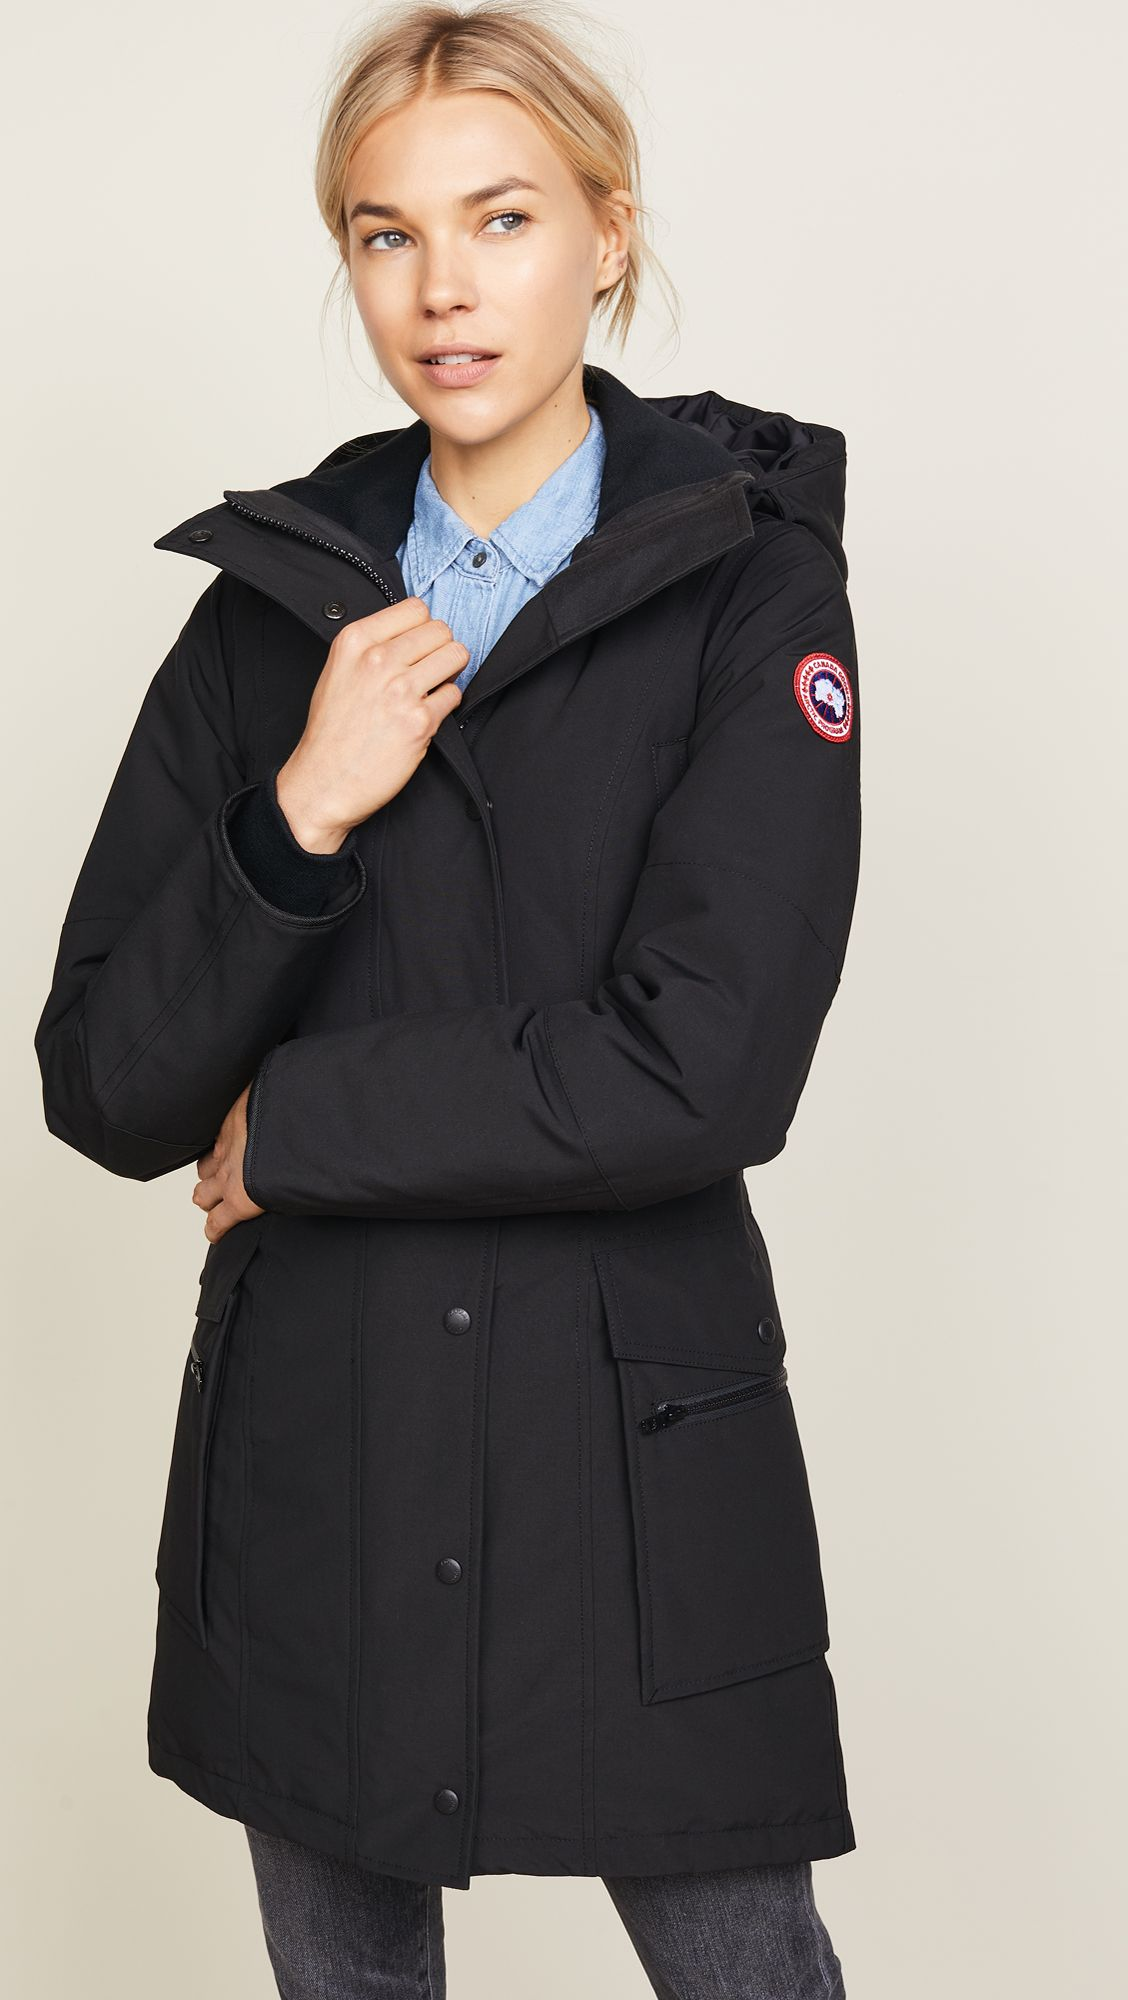 Canada Goose Kinley Parka Save Up To 40 Surprise Sale Sponsored Affiliate Kinley Parka Canada G Puffer Jacket Women Canada Goose Canada Goose Parka